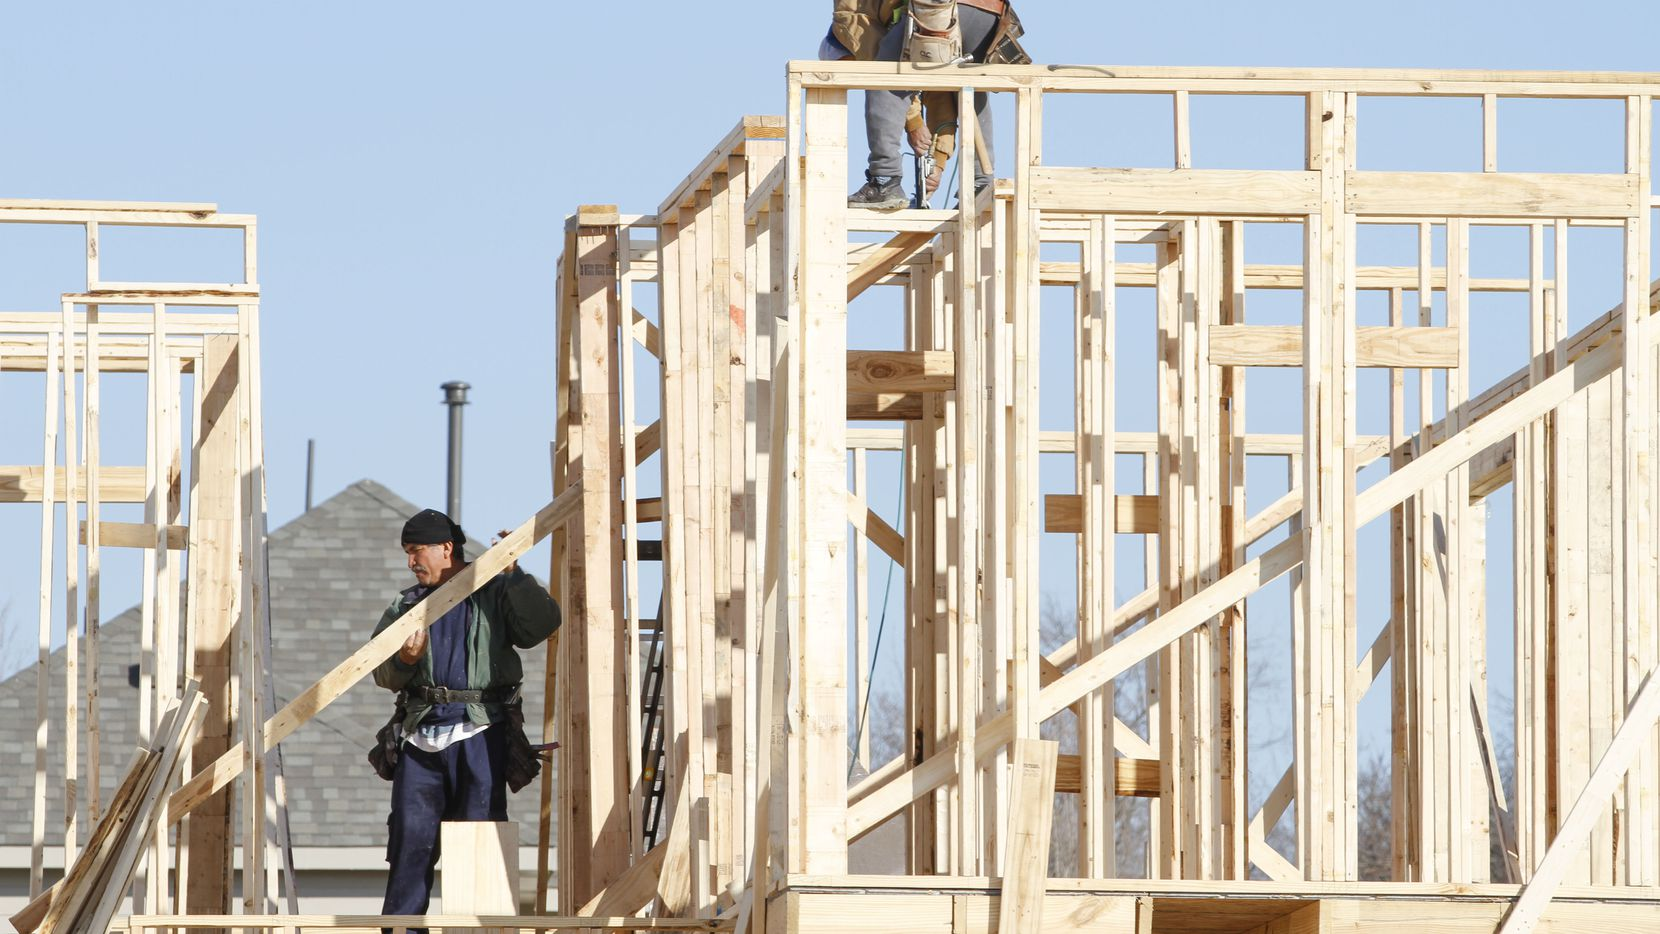 After Christmas Sales Dallas Tx 2020 Dallas Fort Worth home construction and sales will head higher in 2020